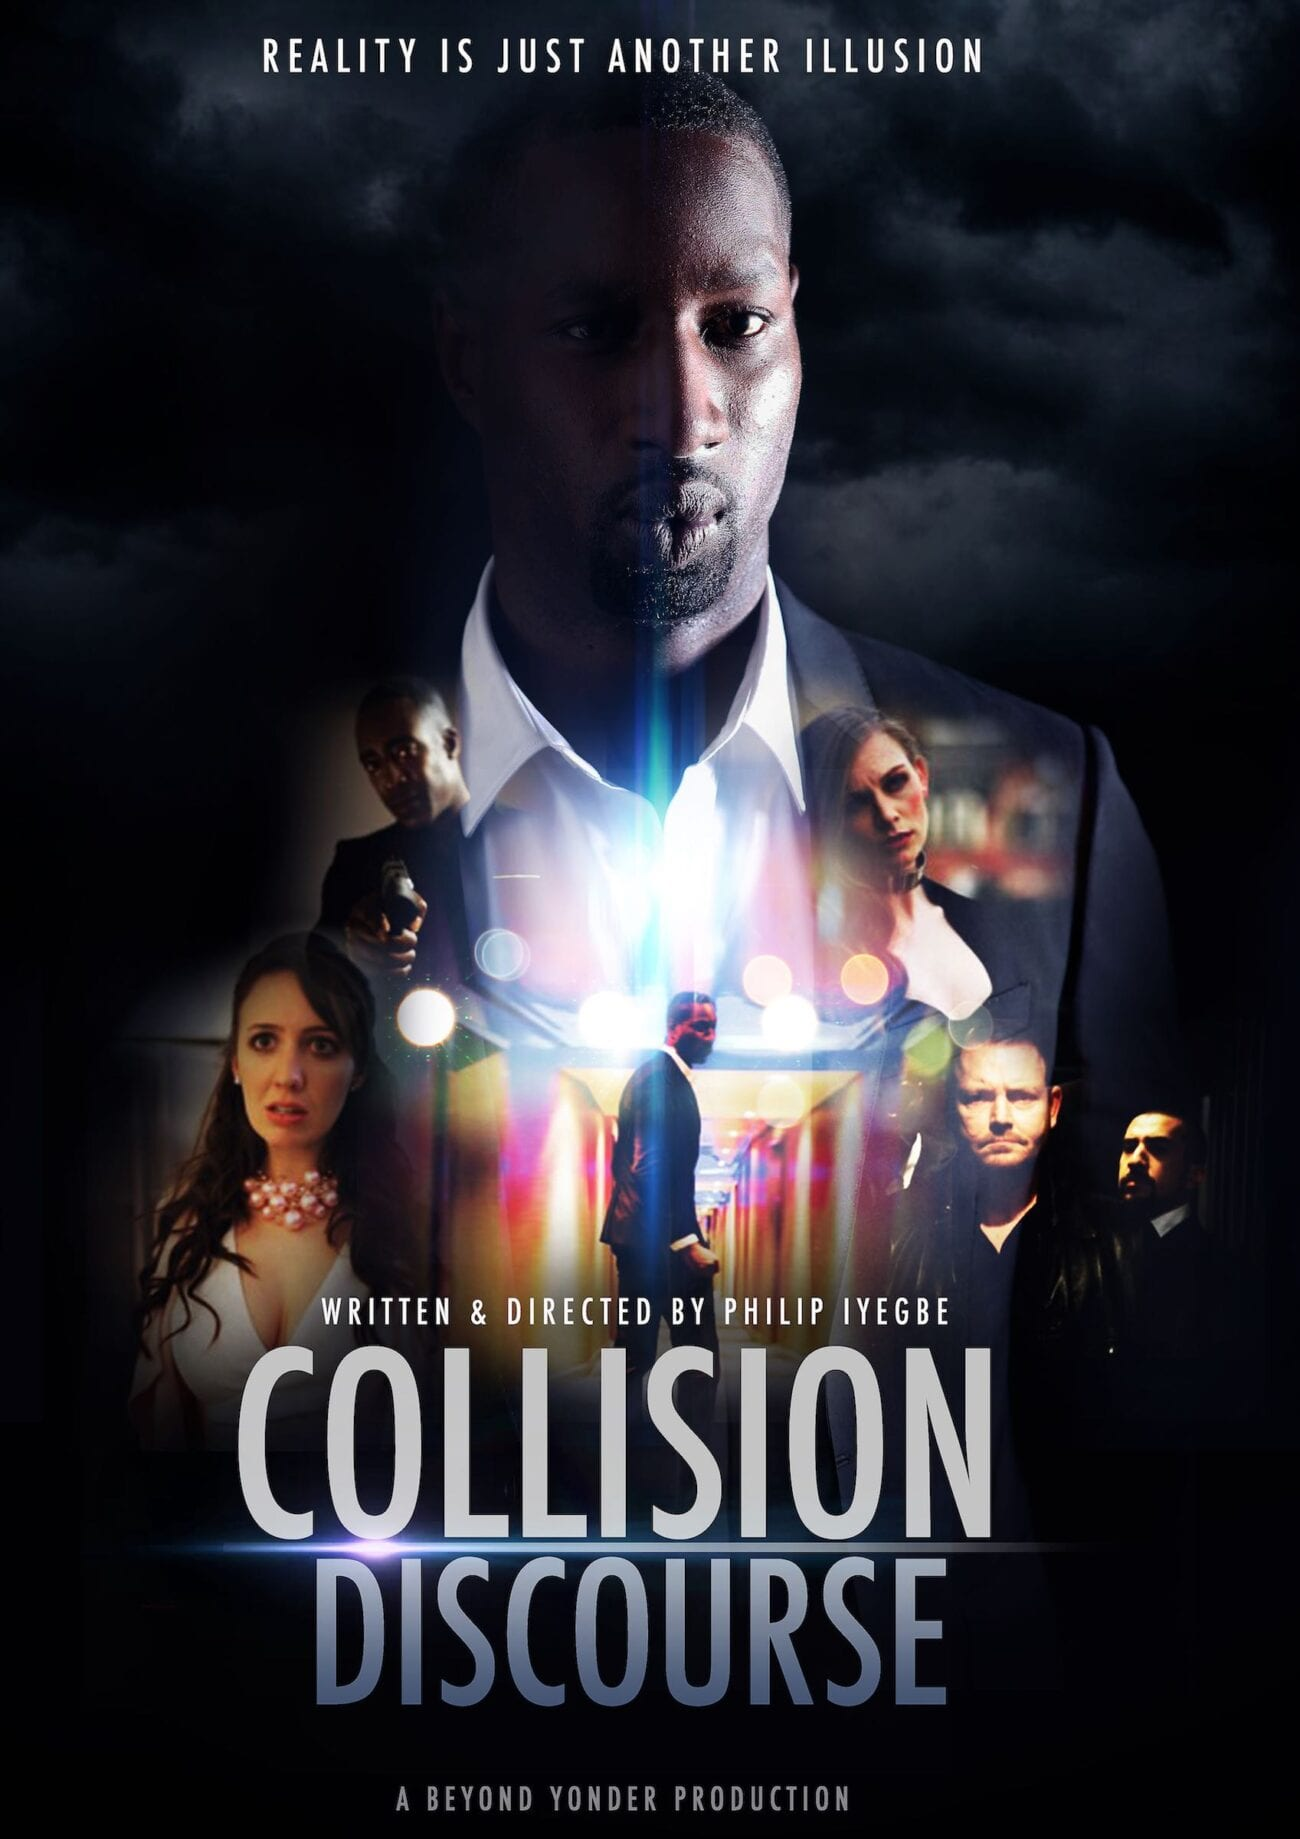 Quarantine has given Philip Iyegbe plenty of time to look to the future, like his newest film, 'Collision Discourse'. Here's our interview with Iyegbe.